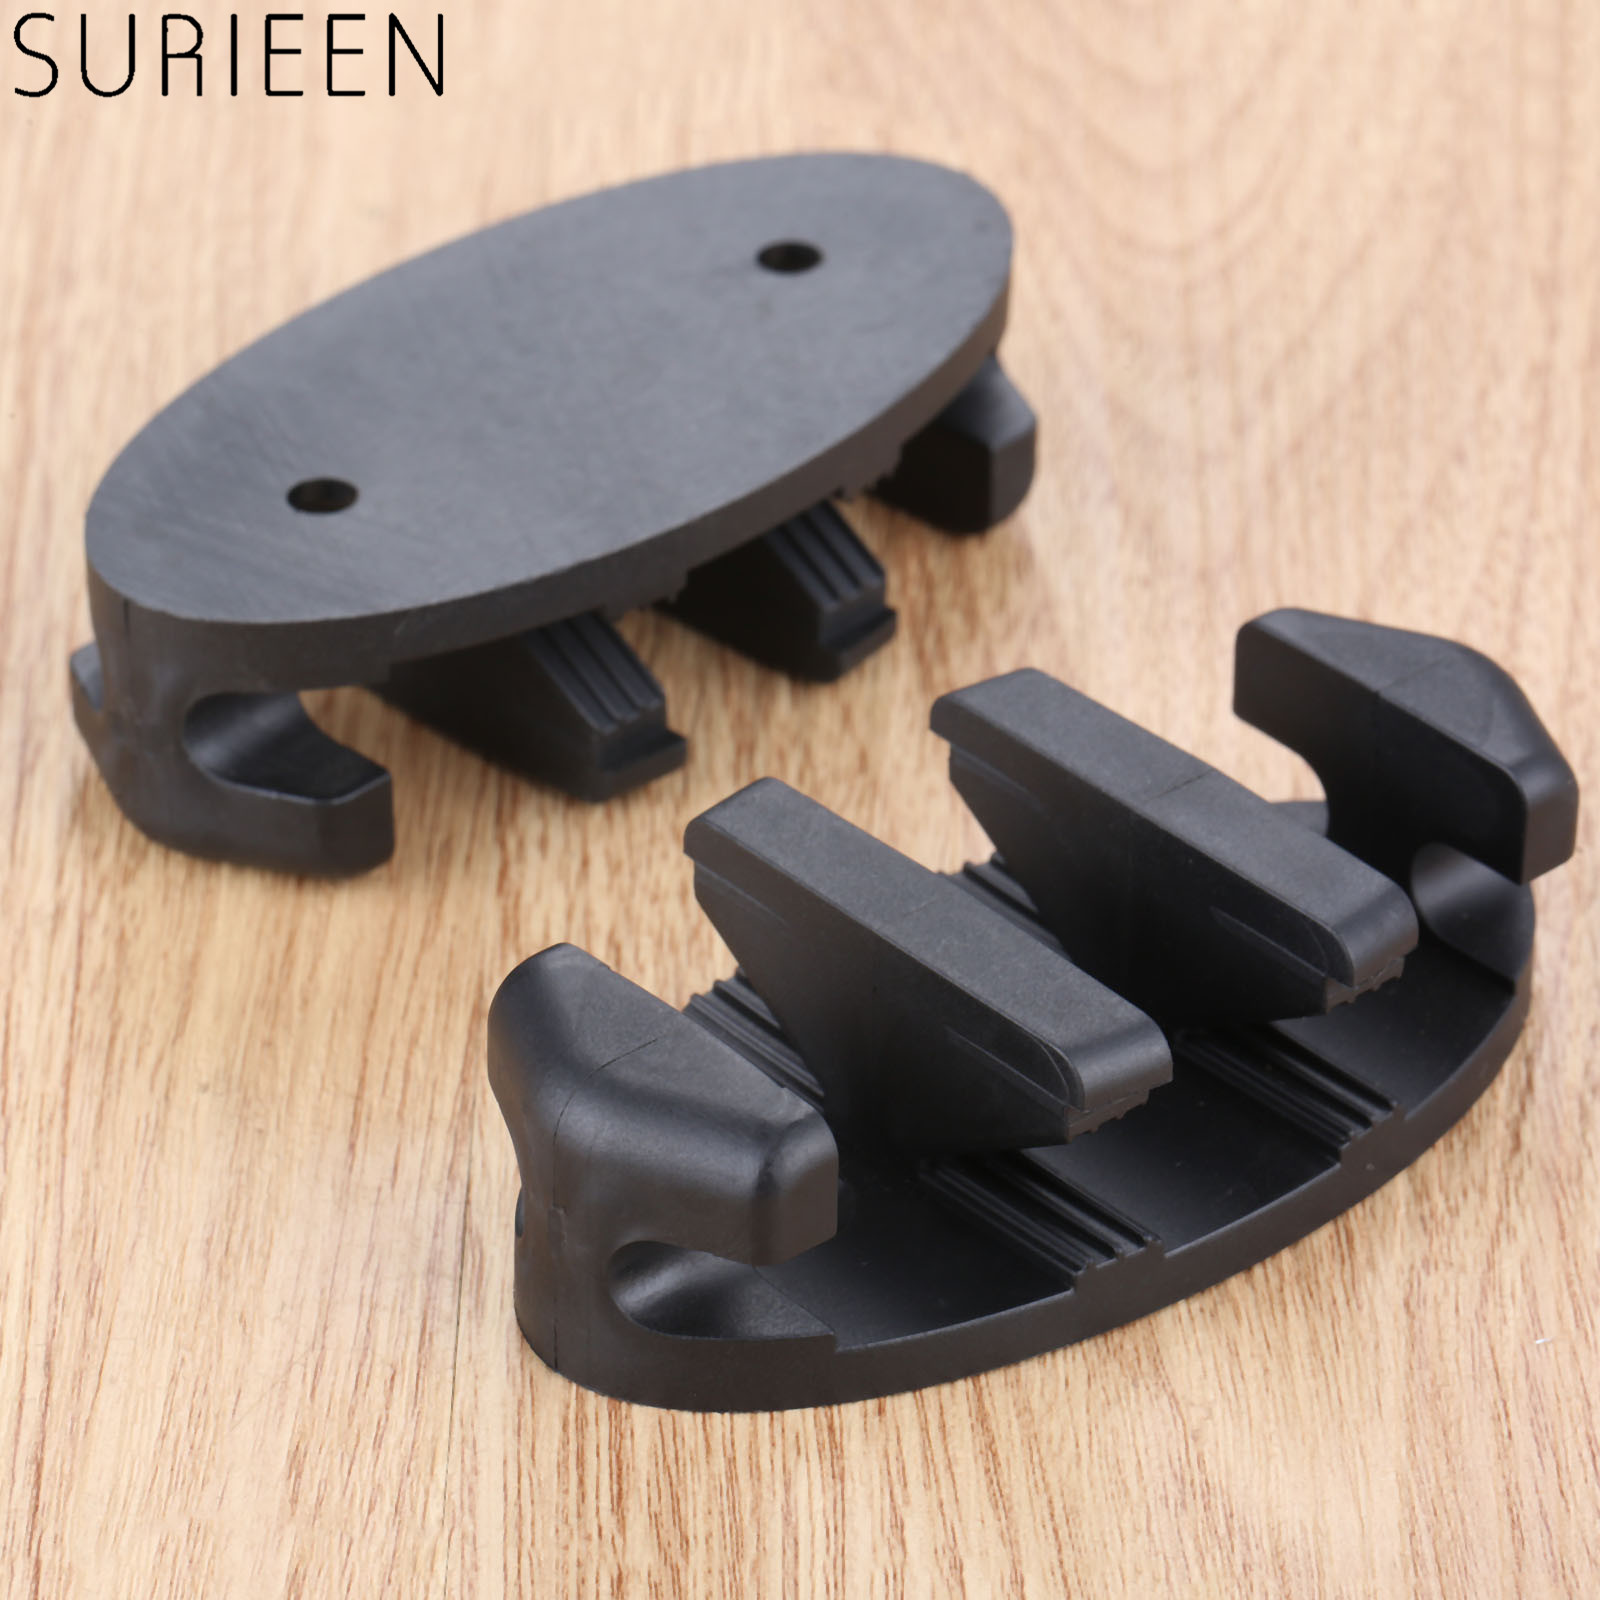 SURIEEN 1Pc Outdoor Water Sports Zig Zag Anchor Cleat For Kayak Dock Truck Trailer Boats Canoes Accessories Marine Secure Anchor